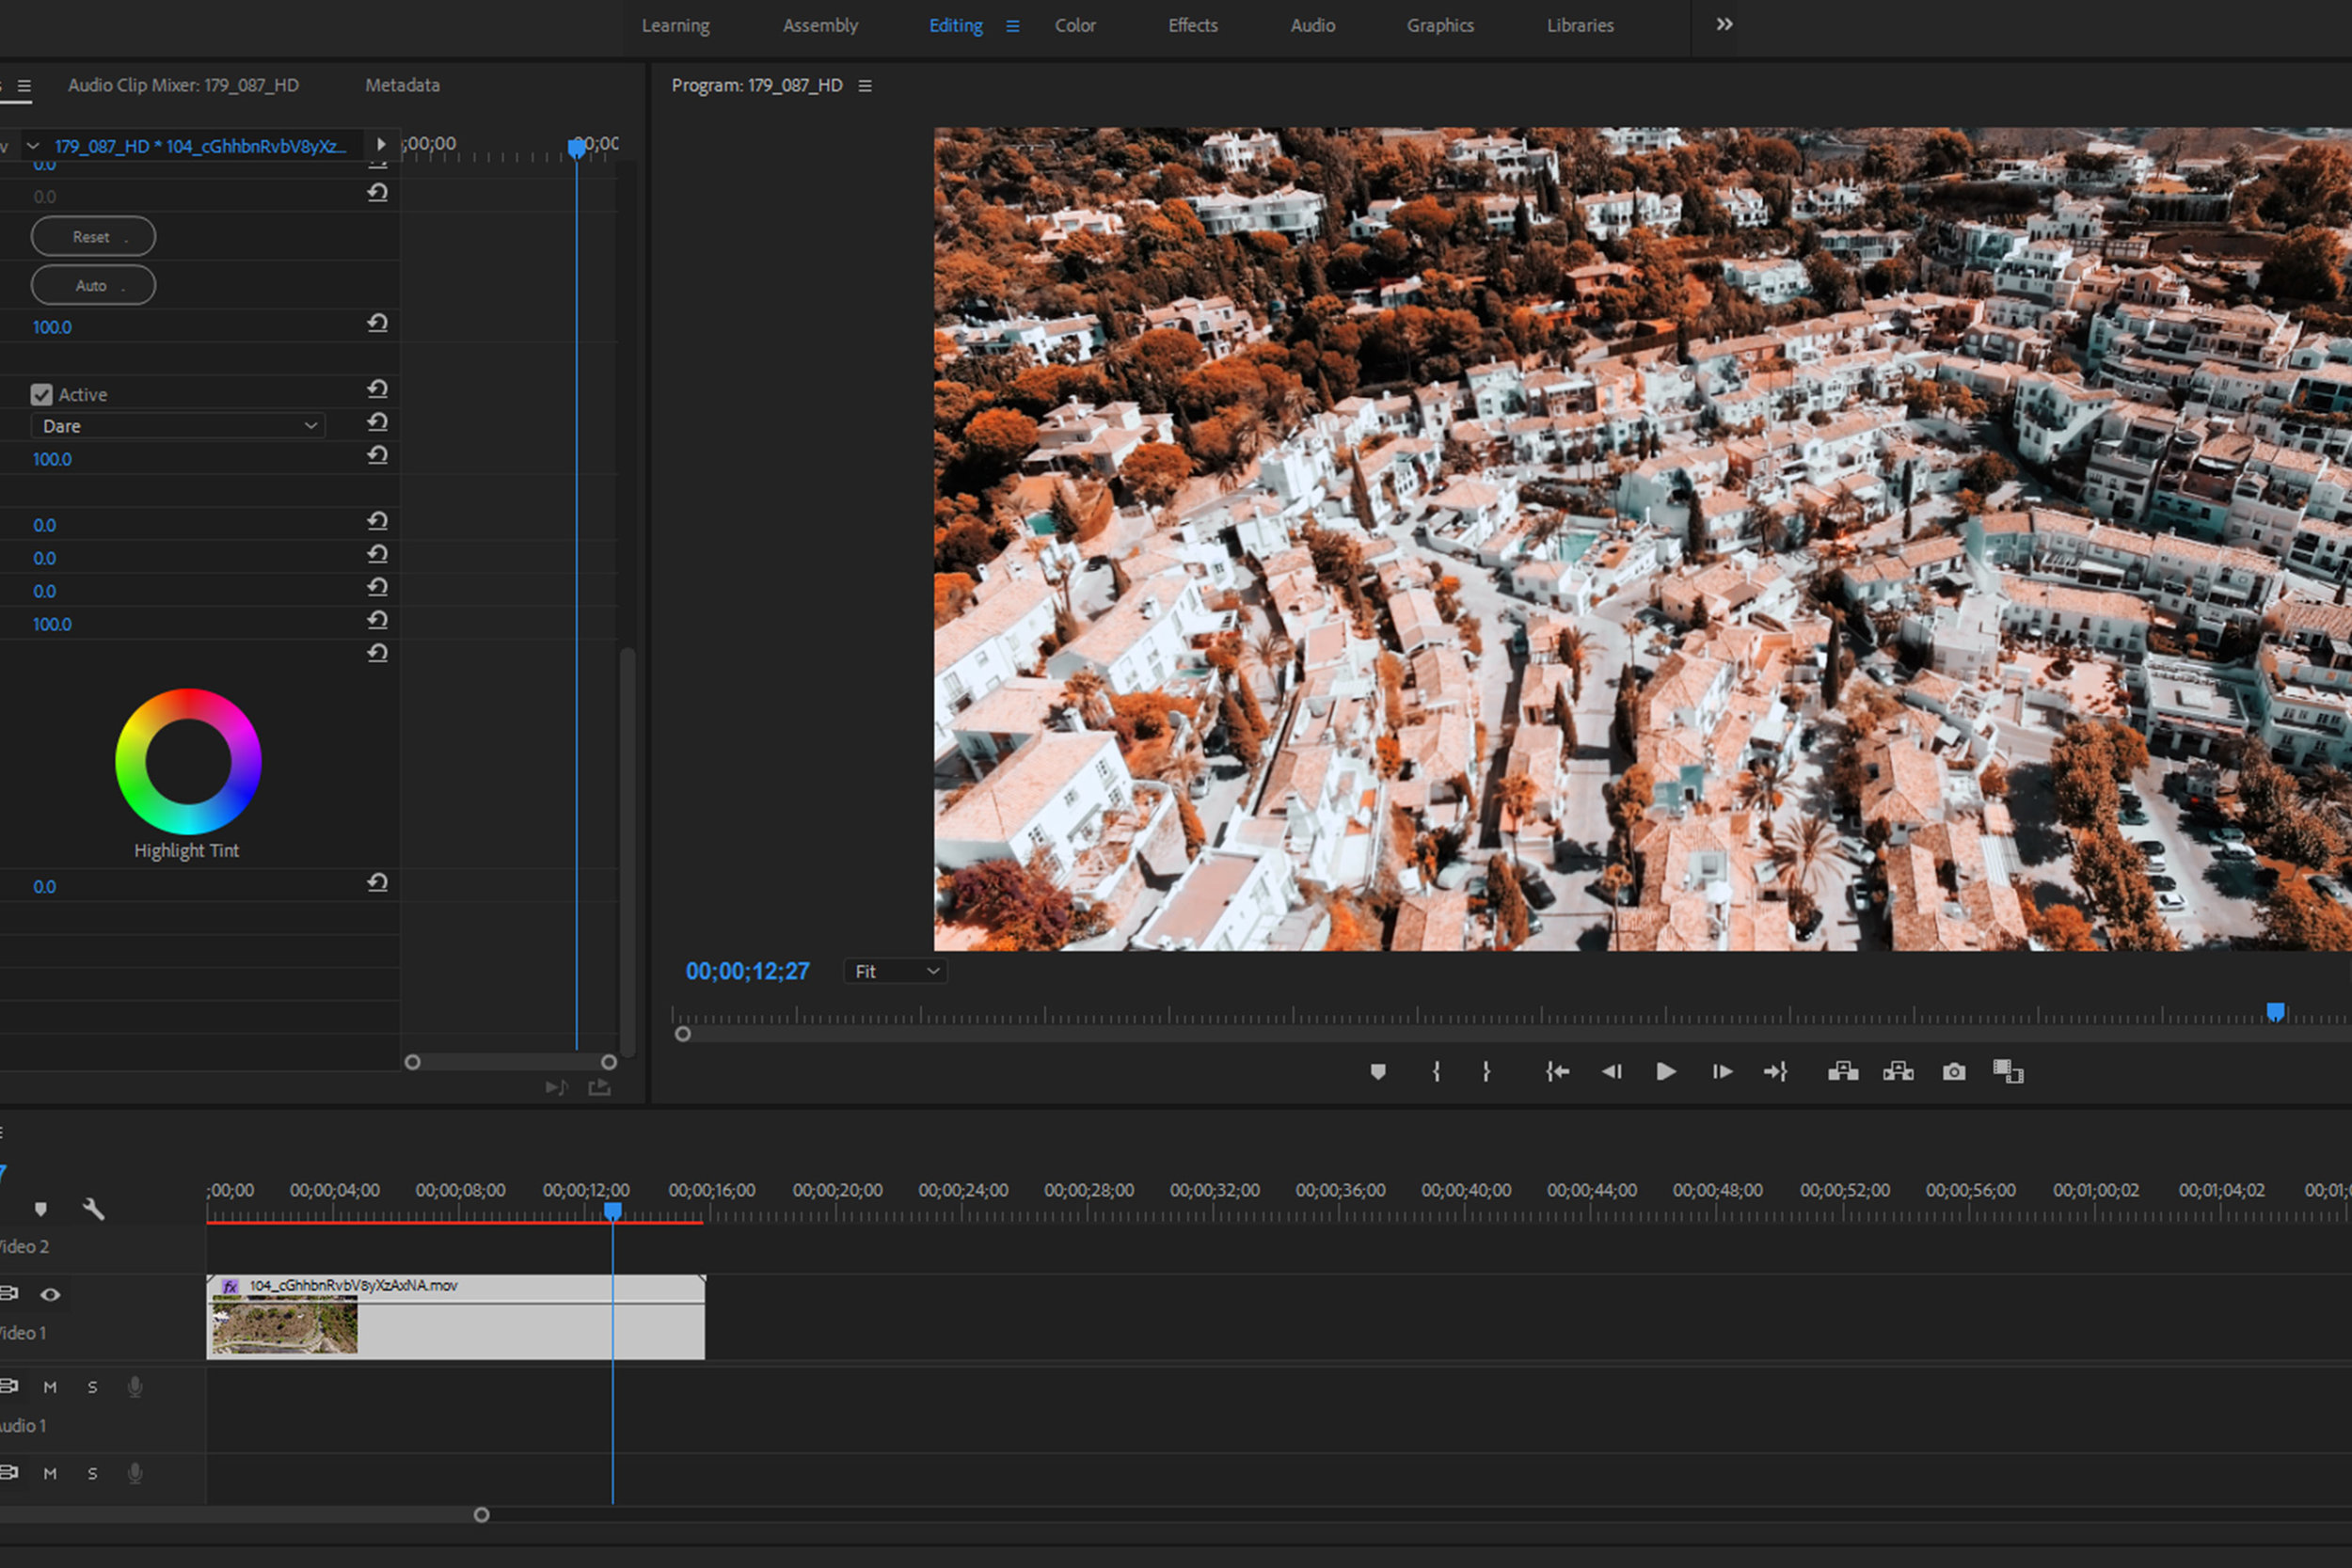 Orange and teal LUTs included. - Use VOXCOLOR Orange and Teal with Photoshop, Premiere, After Effects, Resolve, Affinity Photo and many other editing tools. The matching LUTs means you can get the same consistent results between your photos and videos.